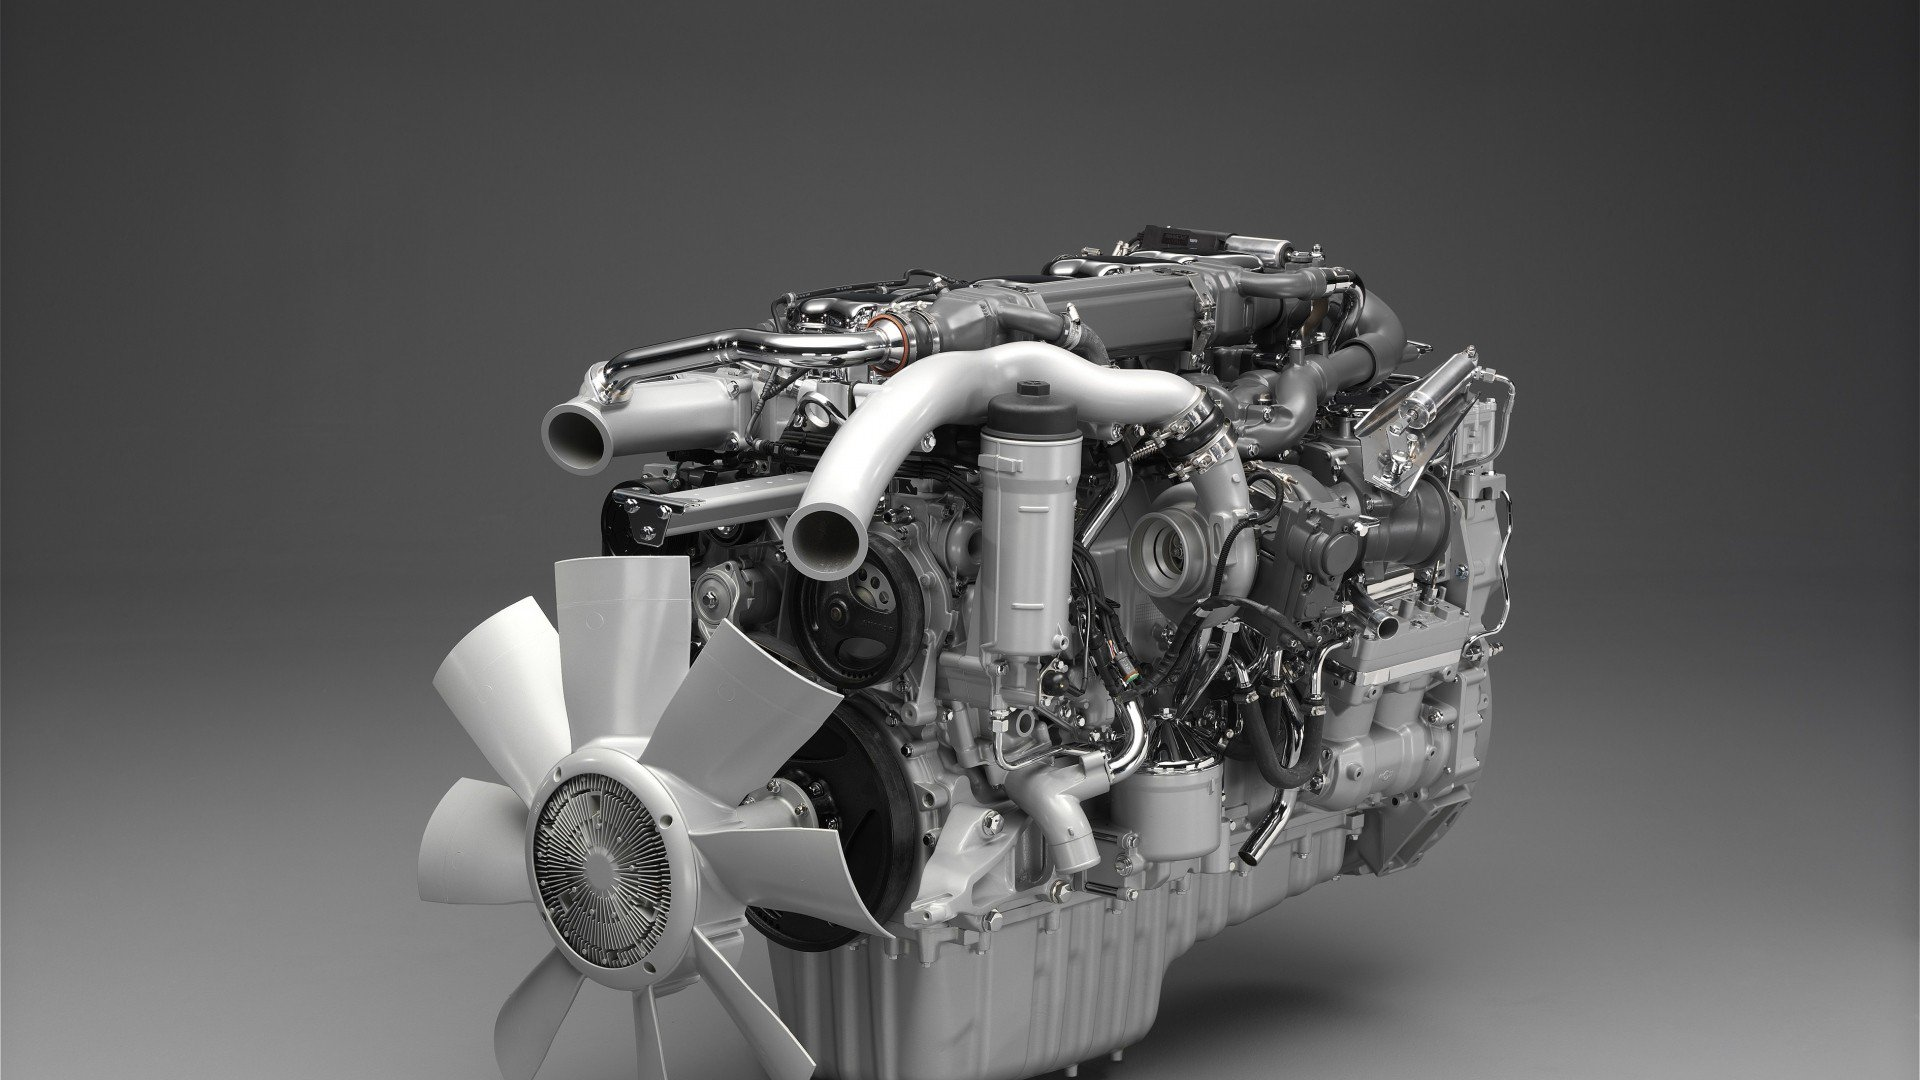 Engine hd others 4k wallpapers images backgrounds photos and pictures - Background images 4k hd ...